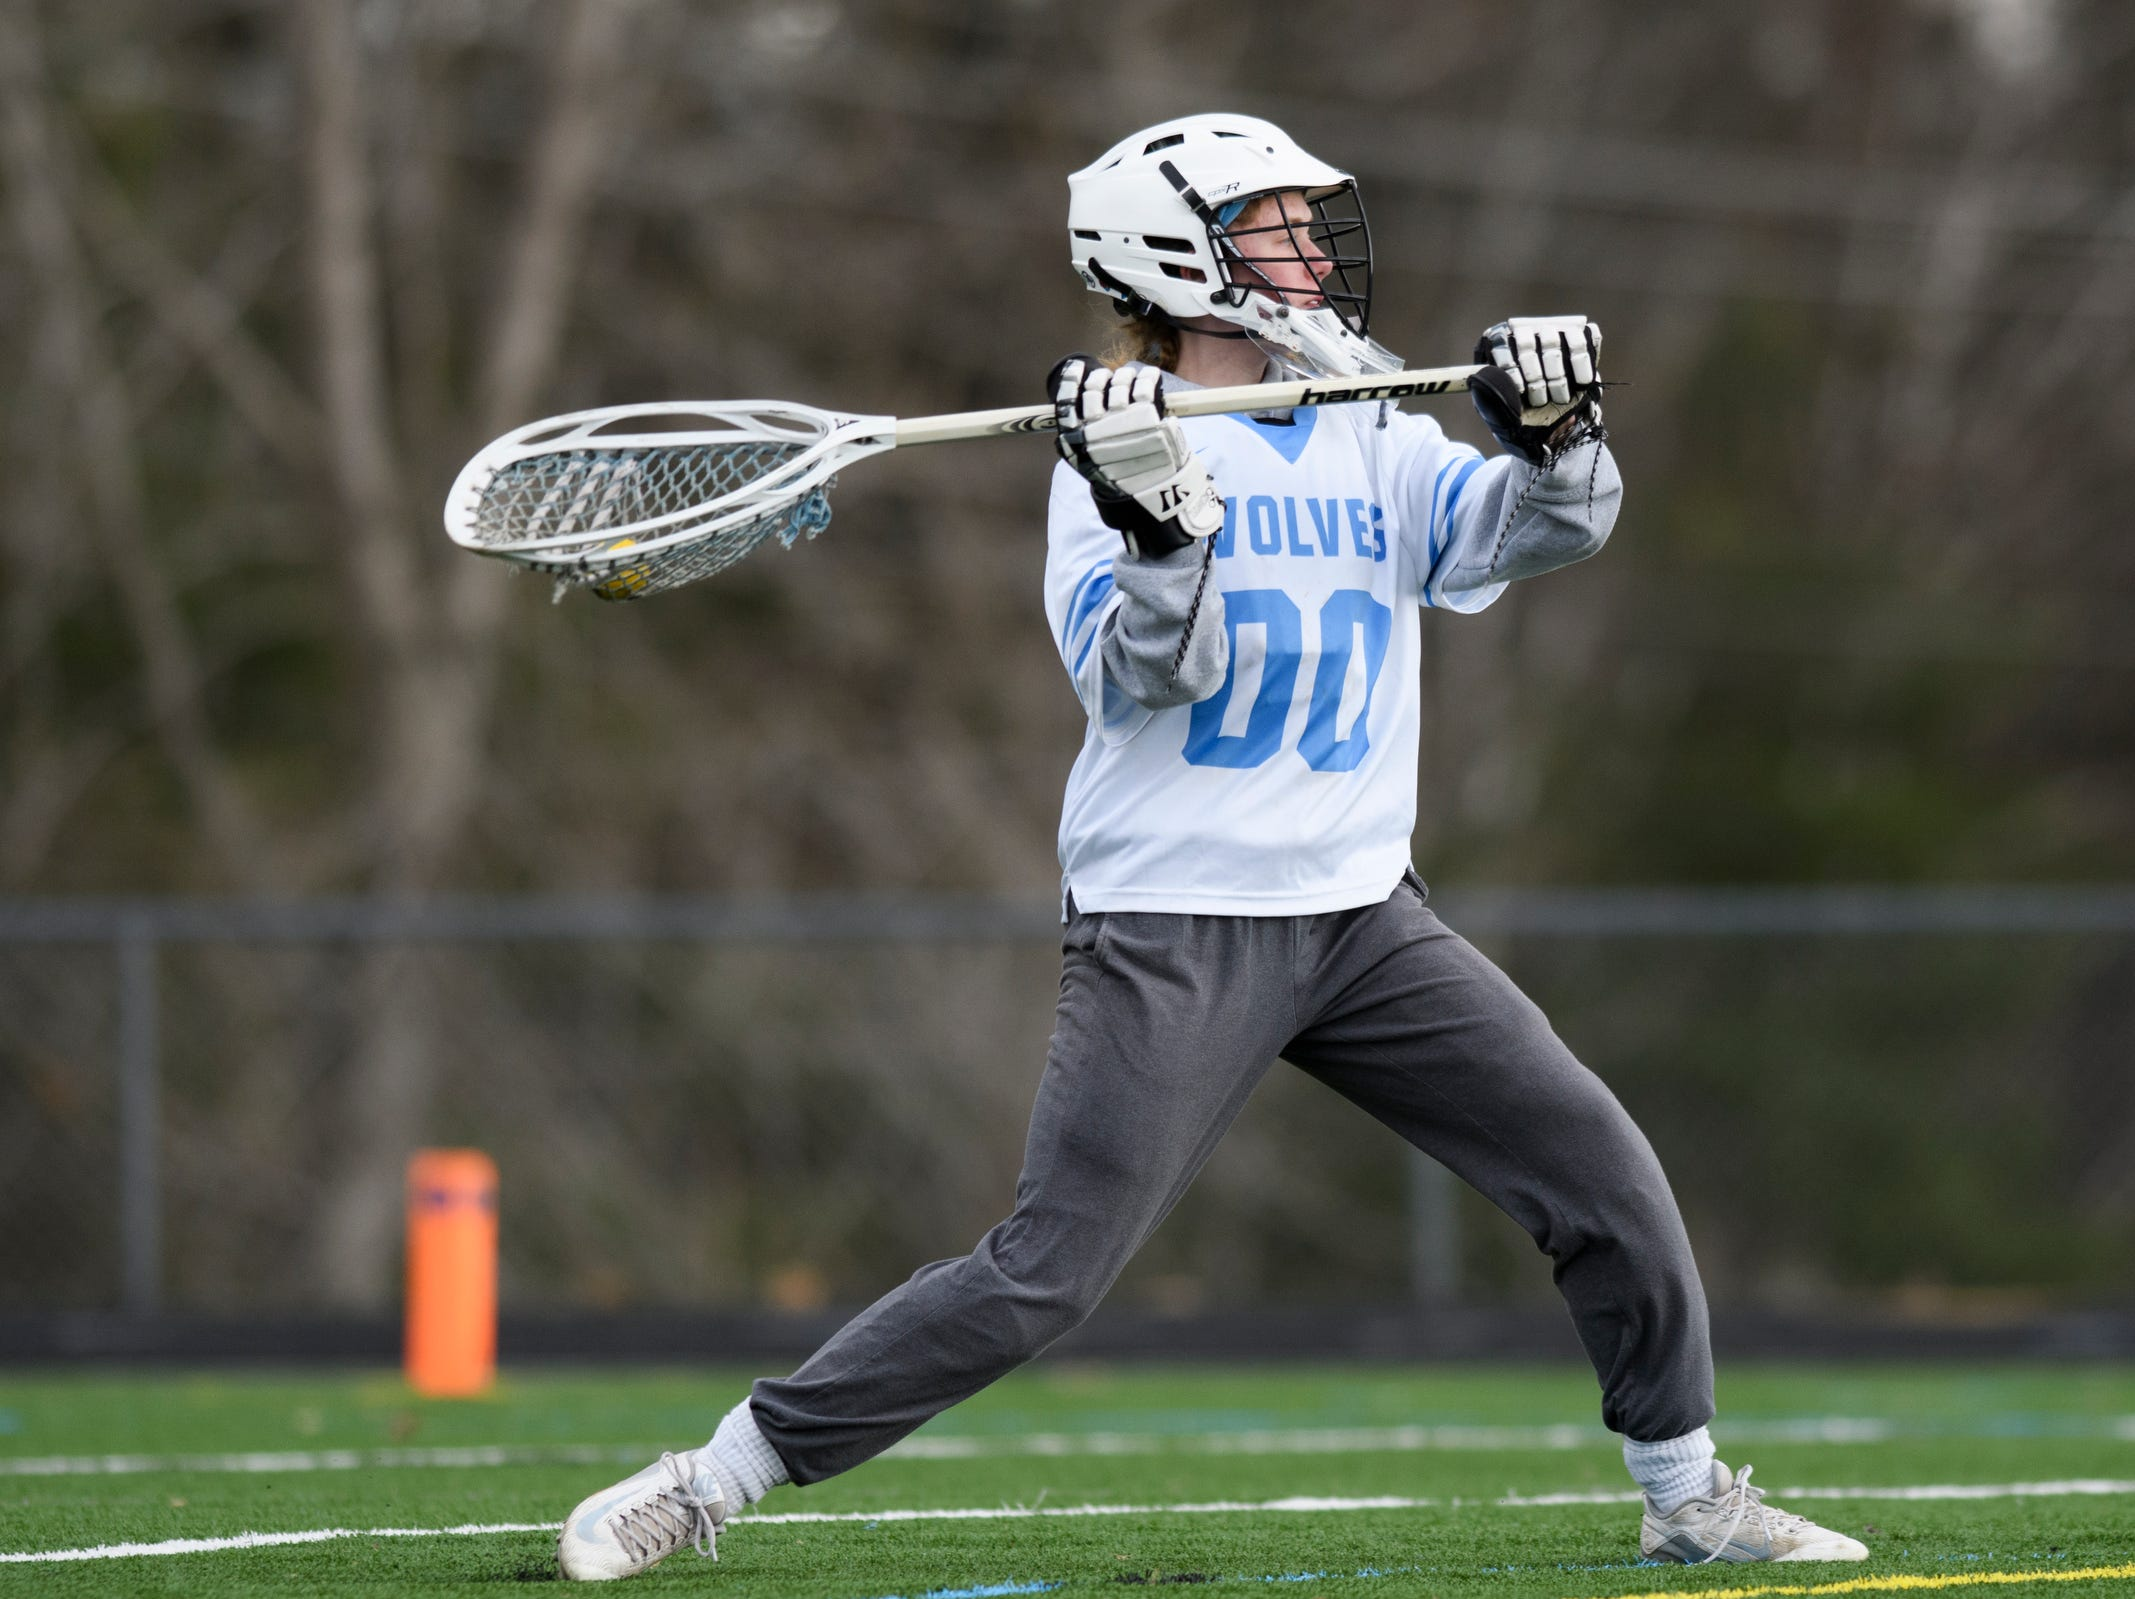 South Burlington goalie Claire Philips (00) passes the ball down the field during the girls lacrosse game between the Rice Green Knights and the South Burlington Wolves at South Burlington High School on Tuesday afternoon April 16, 2019 in South Burlington, Vermont.